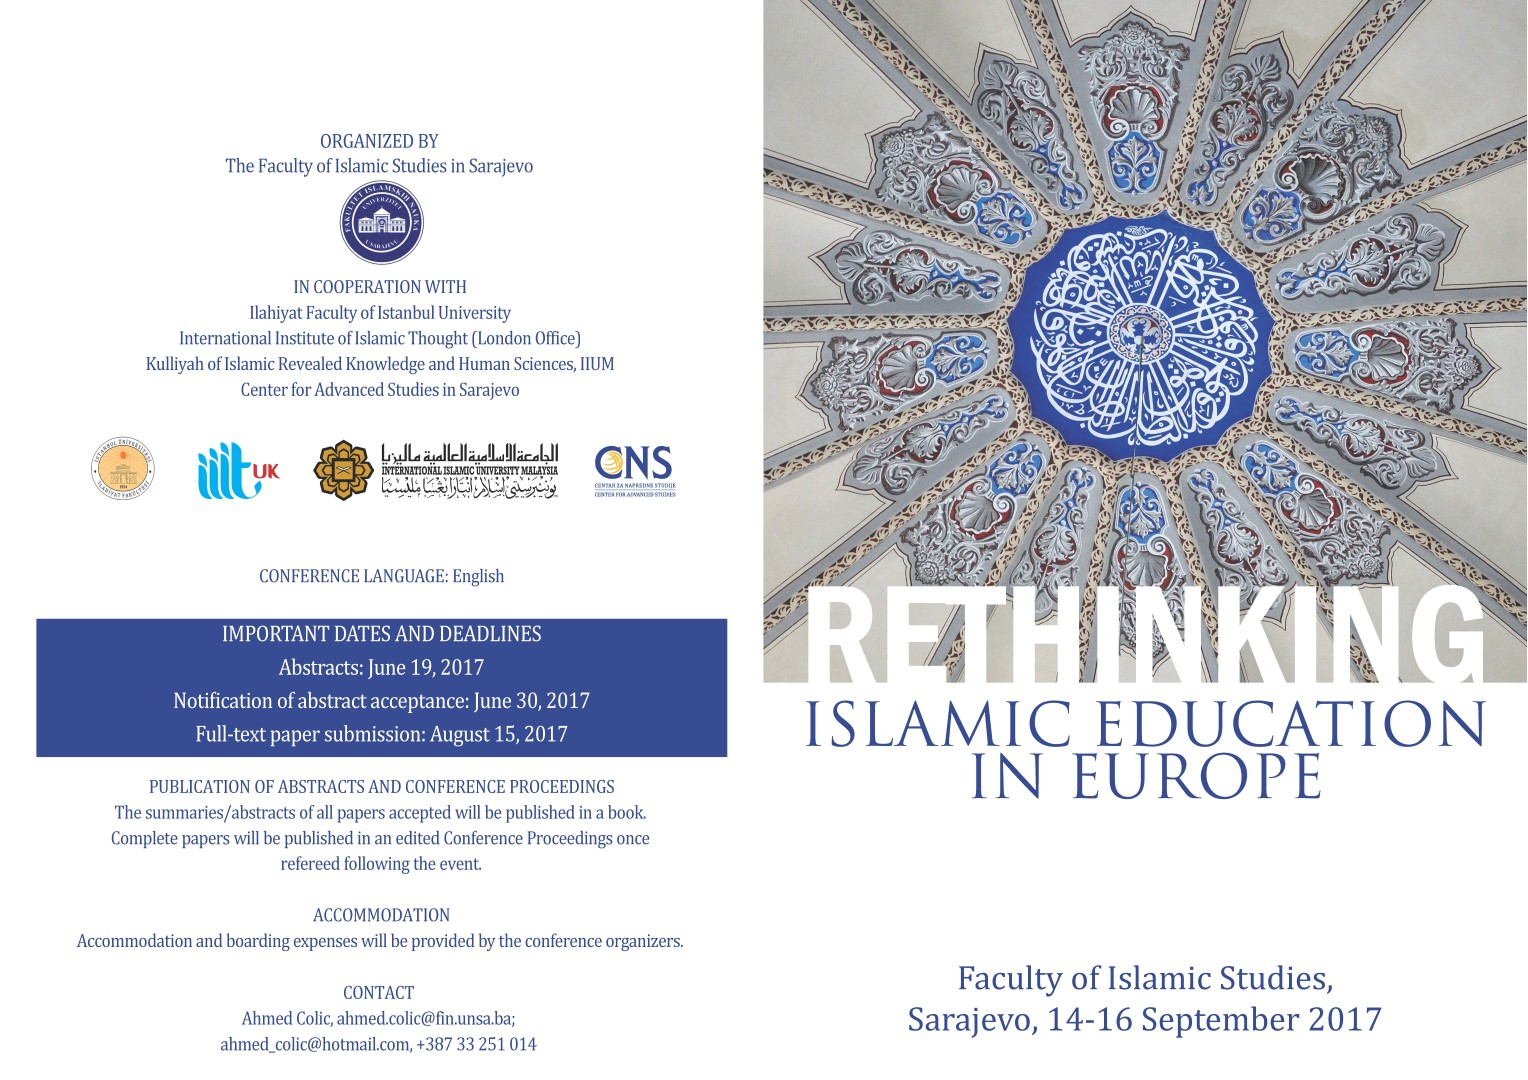 CALL for PAPERS: RETHINKING ISLAMIC EDUCATION IN EUROPE